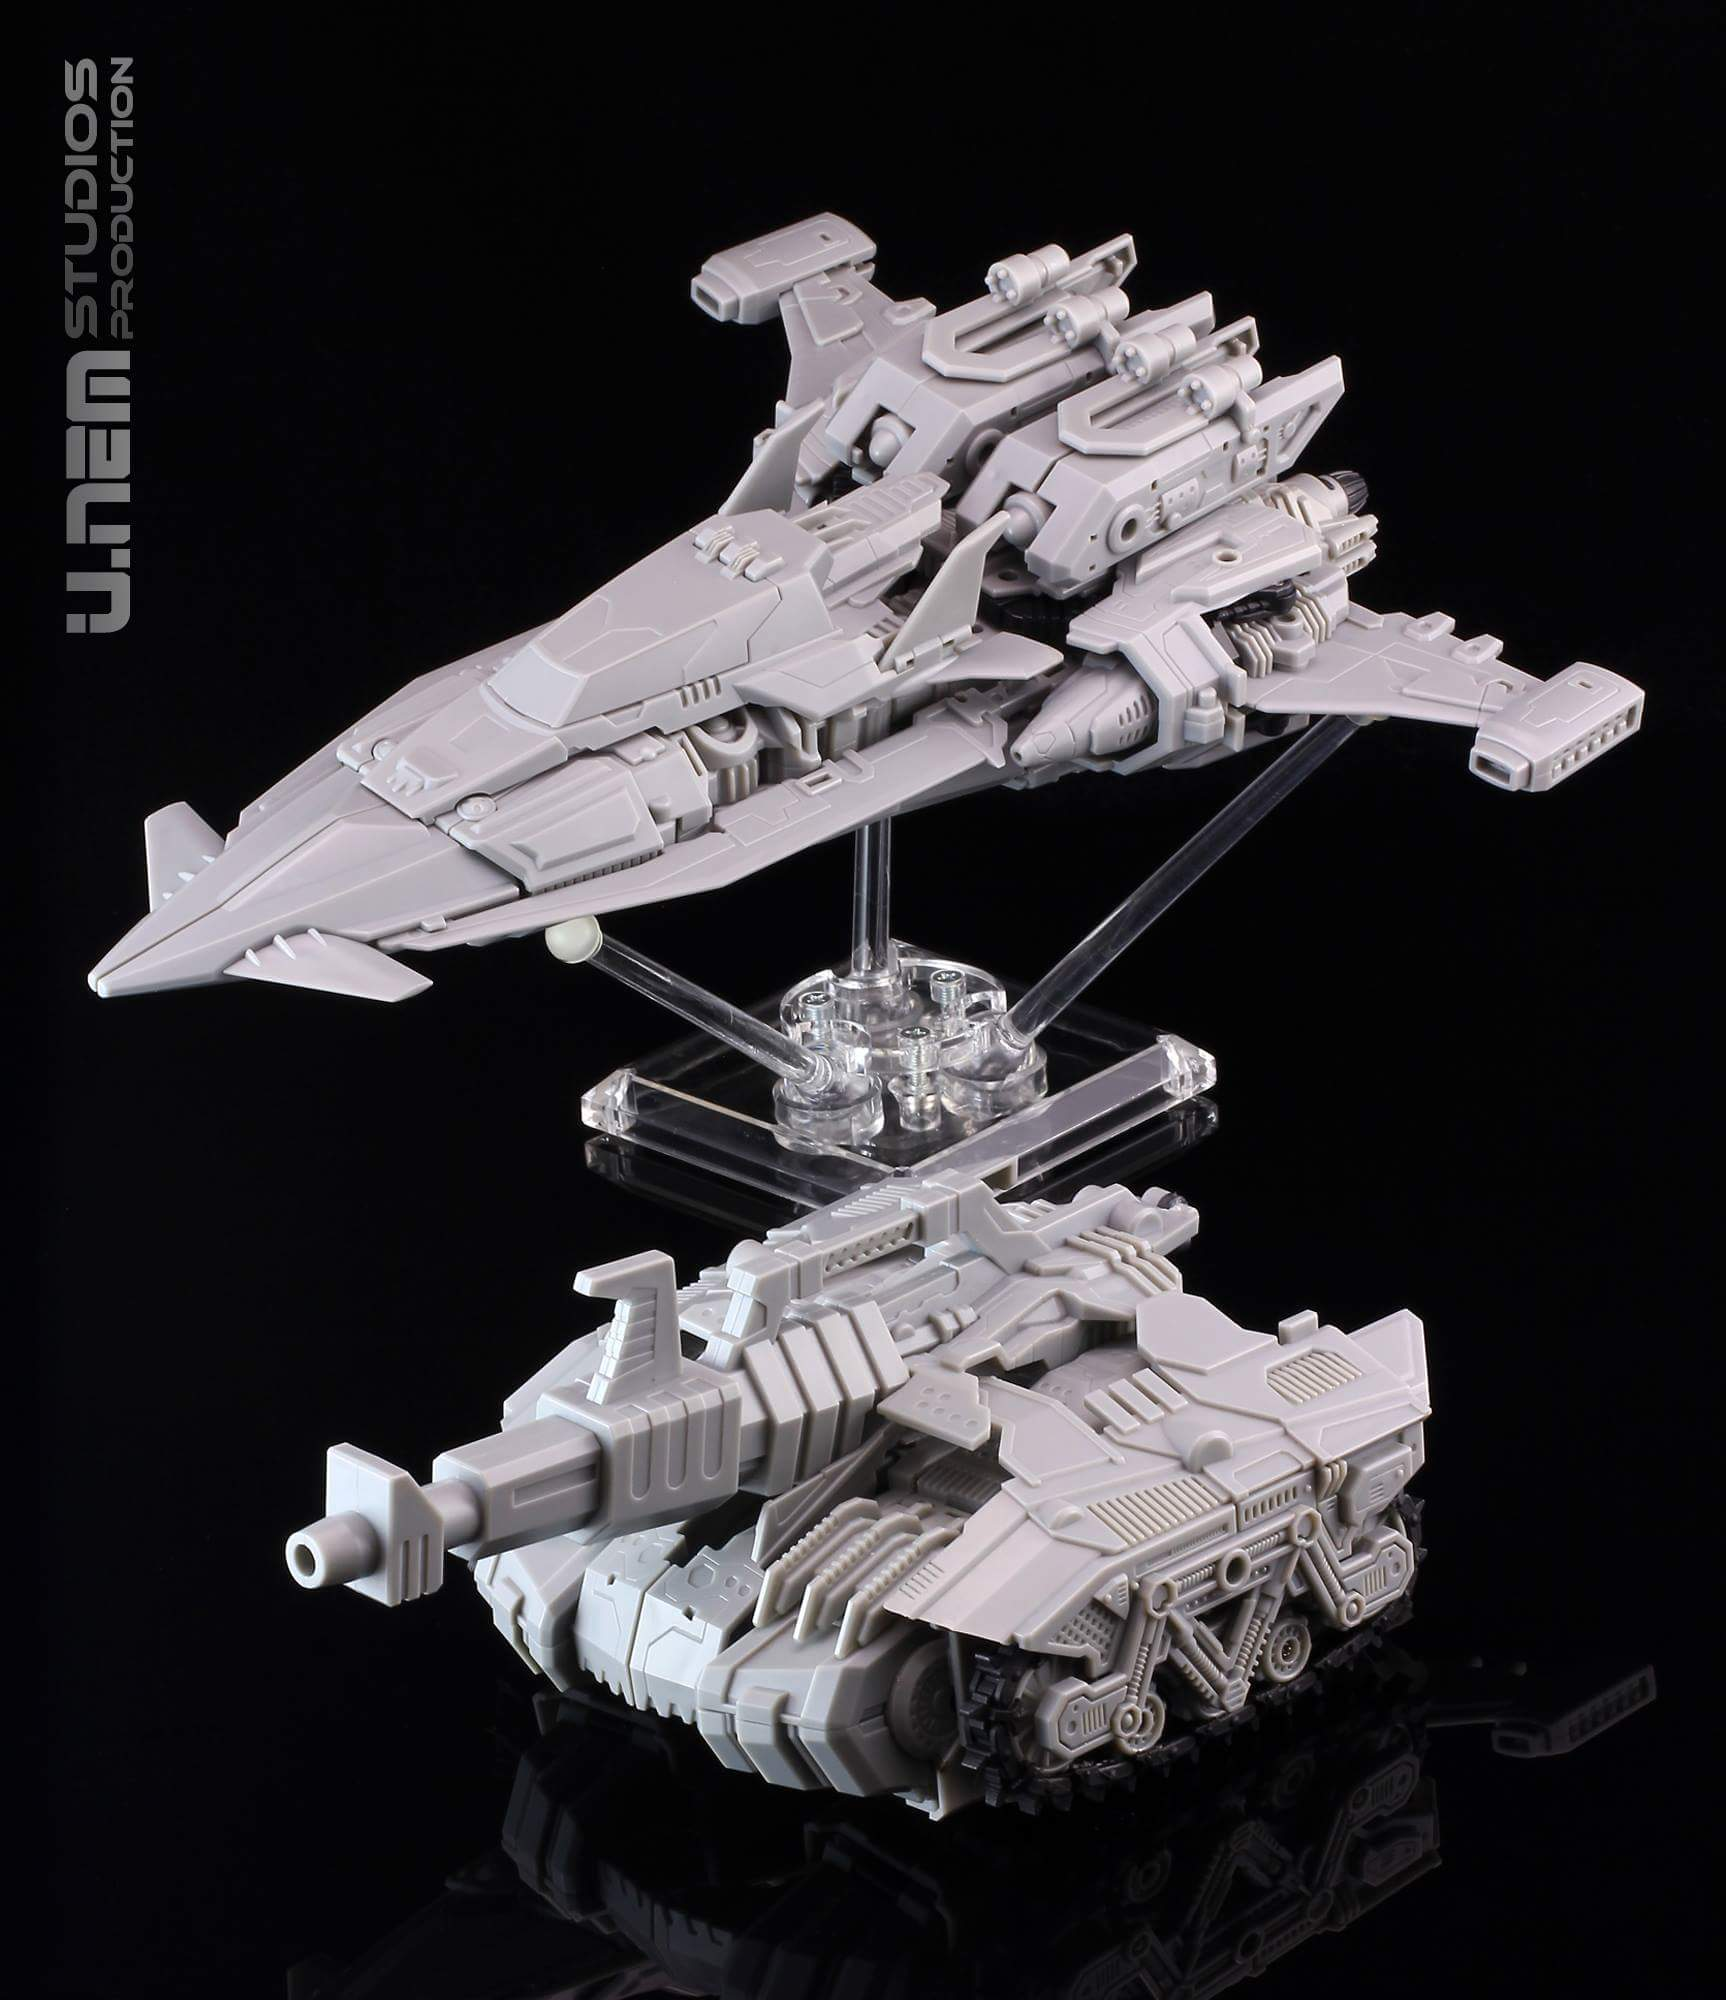 [Mastermind Creations] Produit Tiers - R-17 Carnifex - aka Overlord (TF Masterforce) CVrx3s8S